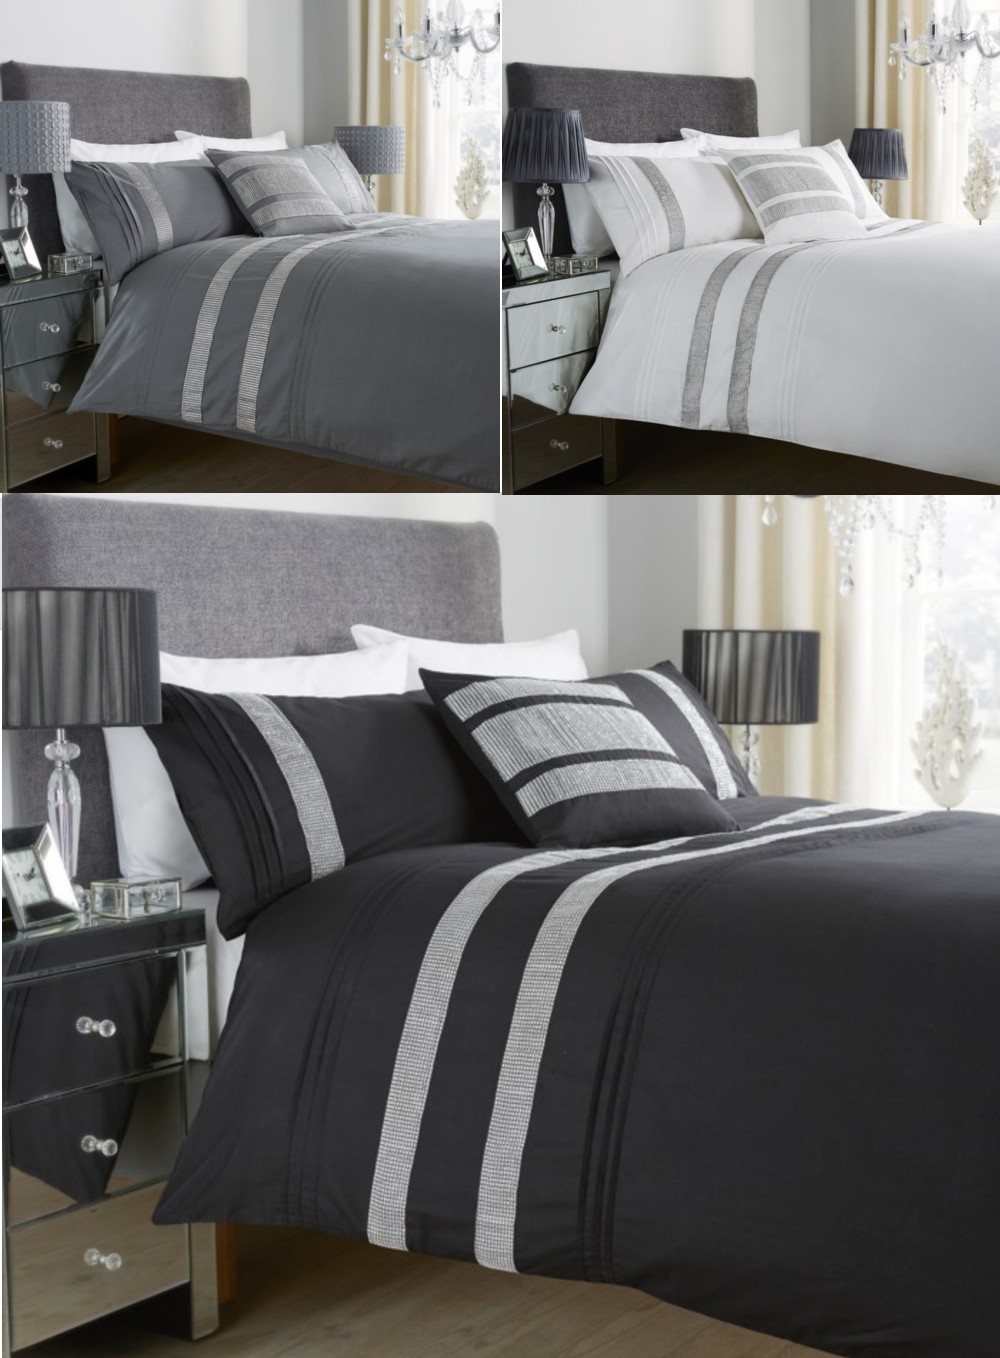 glitz diamant spitze bettw sche set alle gr en ebay. Black Bedroom Furniture Sets. Home Design Ideas